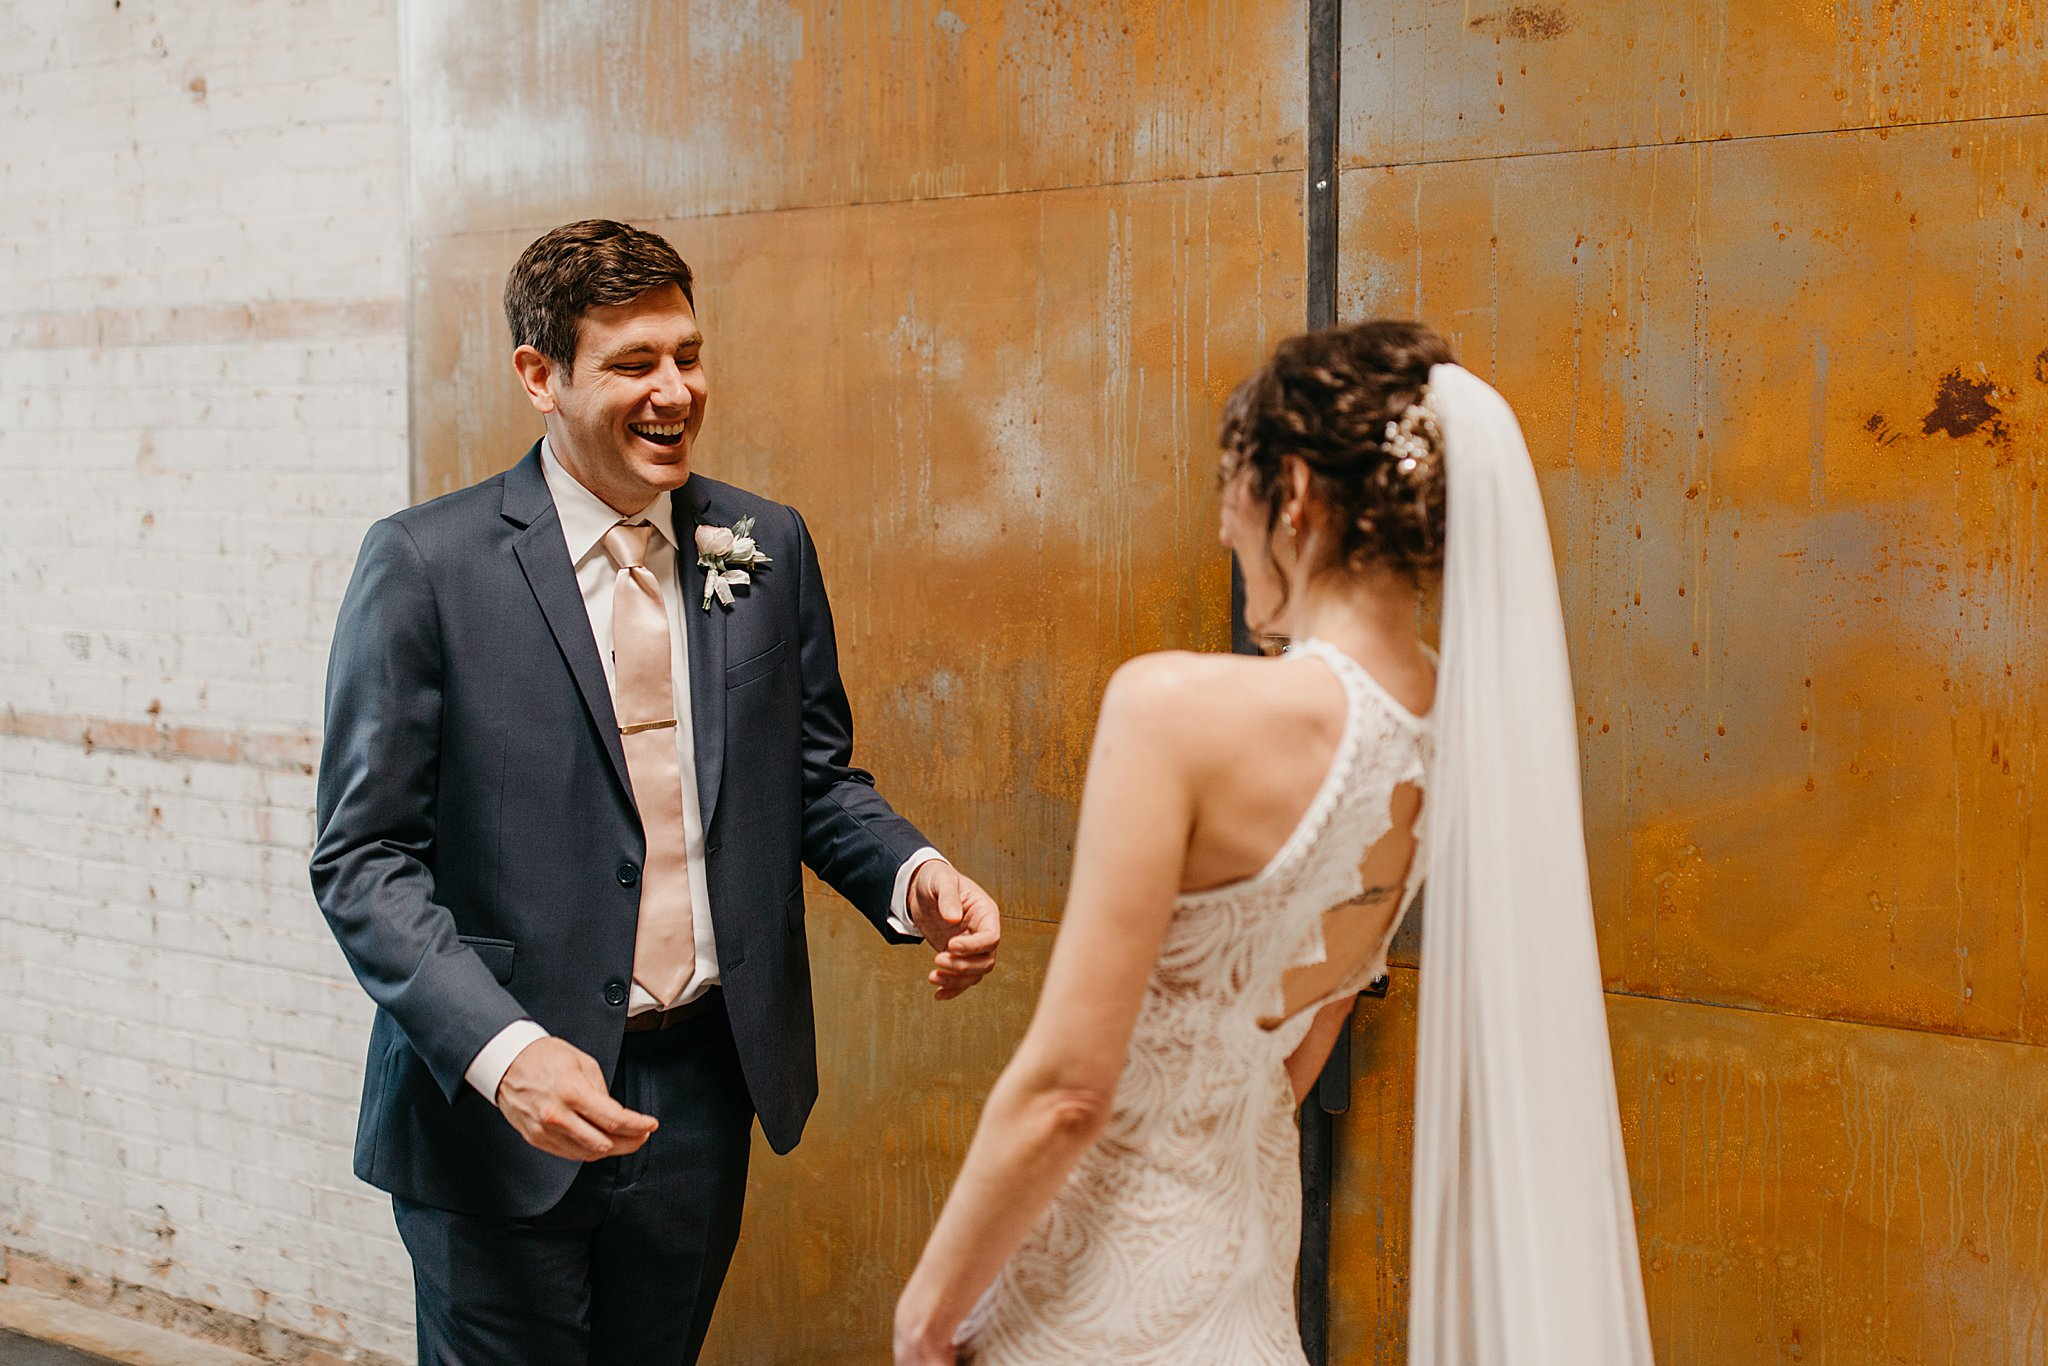 Wilderlove Co_Wedding Photographer_Industrial Wedding_Jewish Wedding_Dallas Texas Wedding_Brake & Clutch Warehouse_North Texas Photographer_0020.jpg